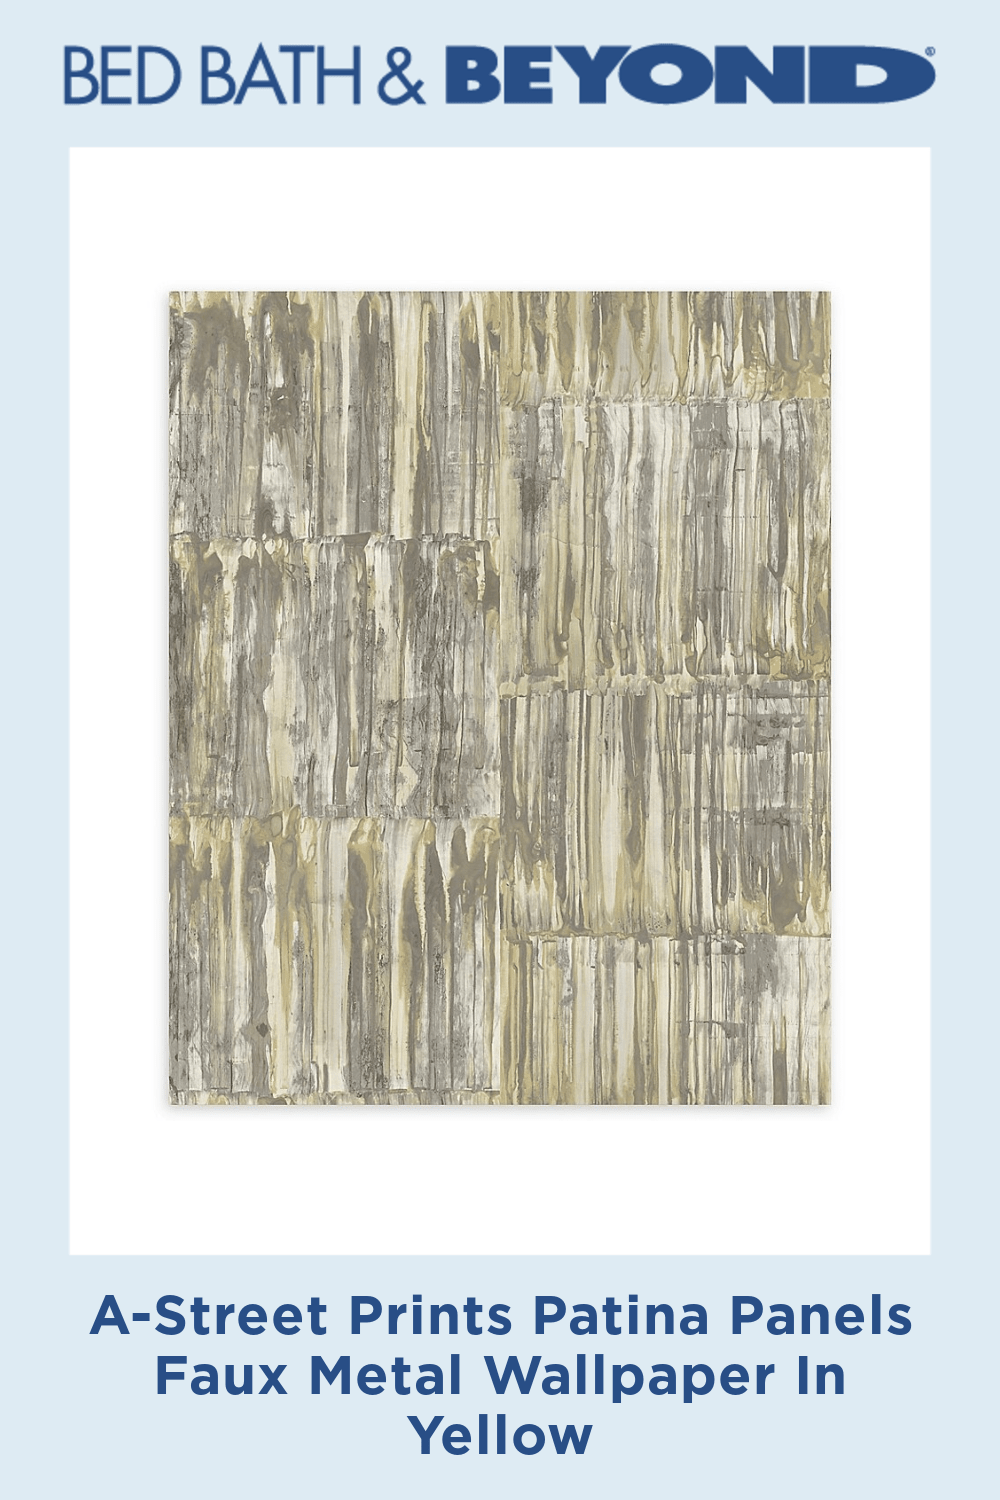 A-Street Prints Patina Panels Faux Metal Wallpaper In Yellow